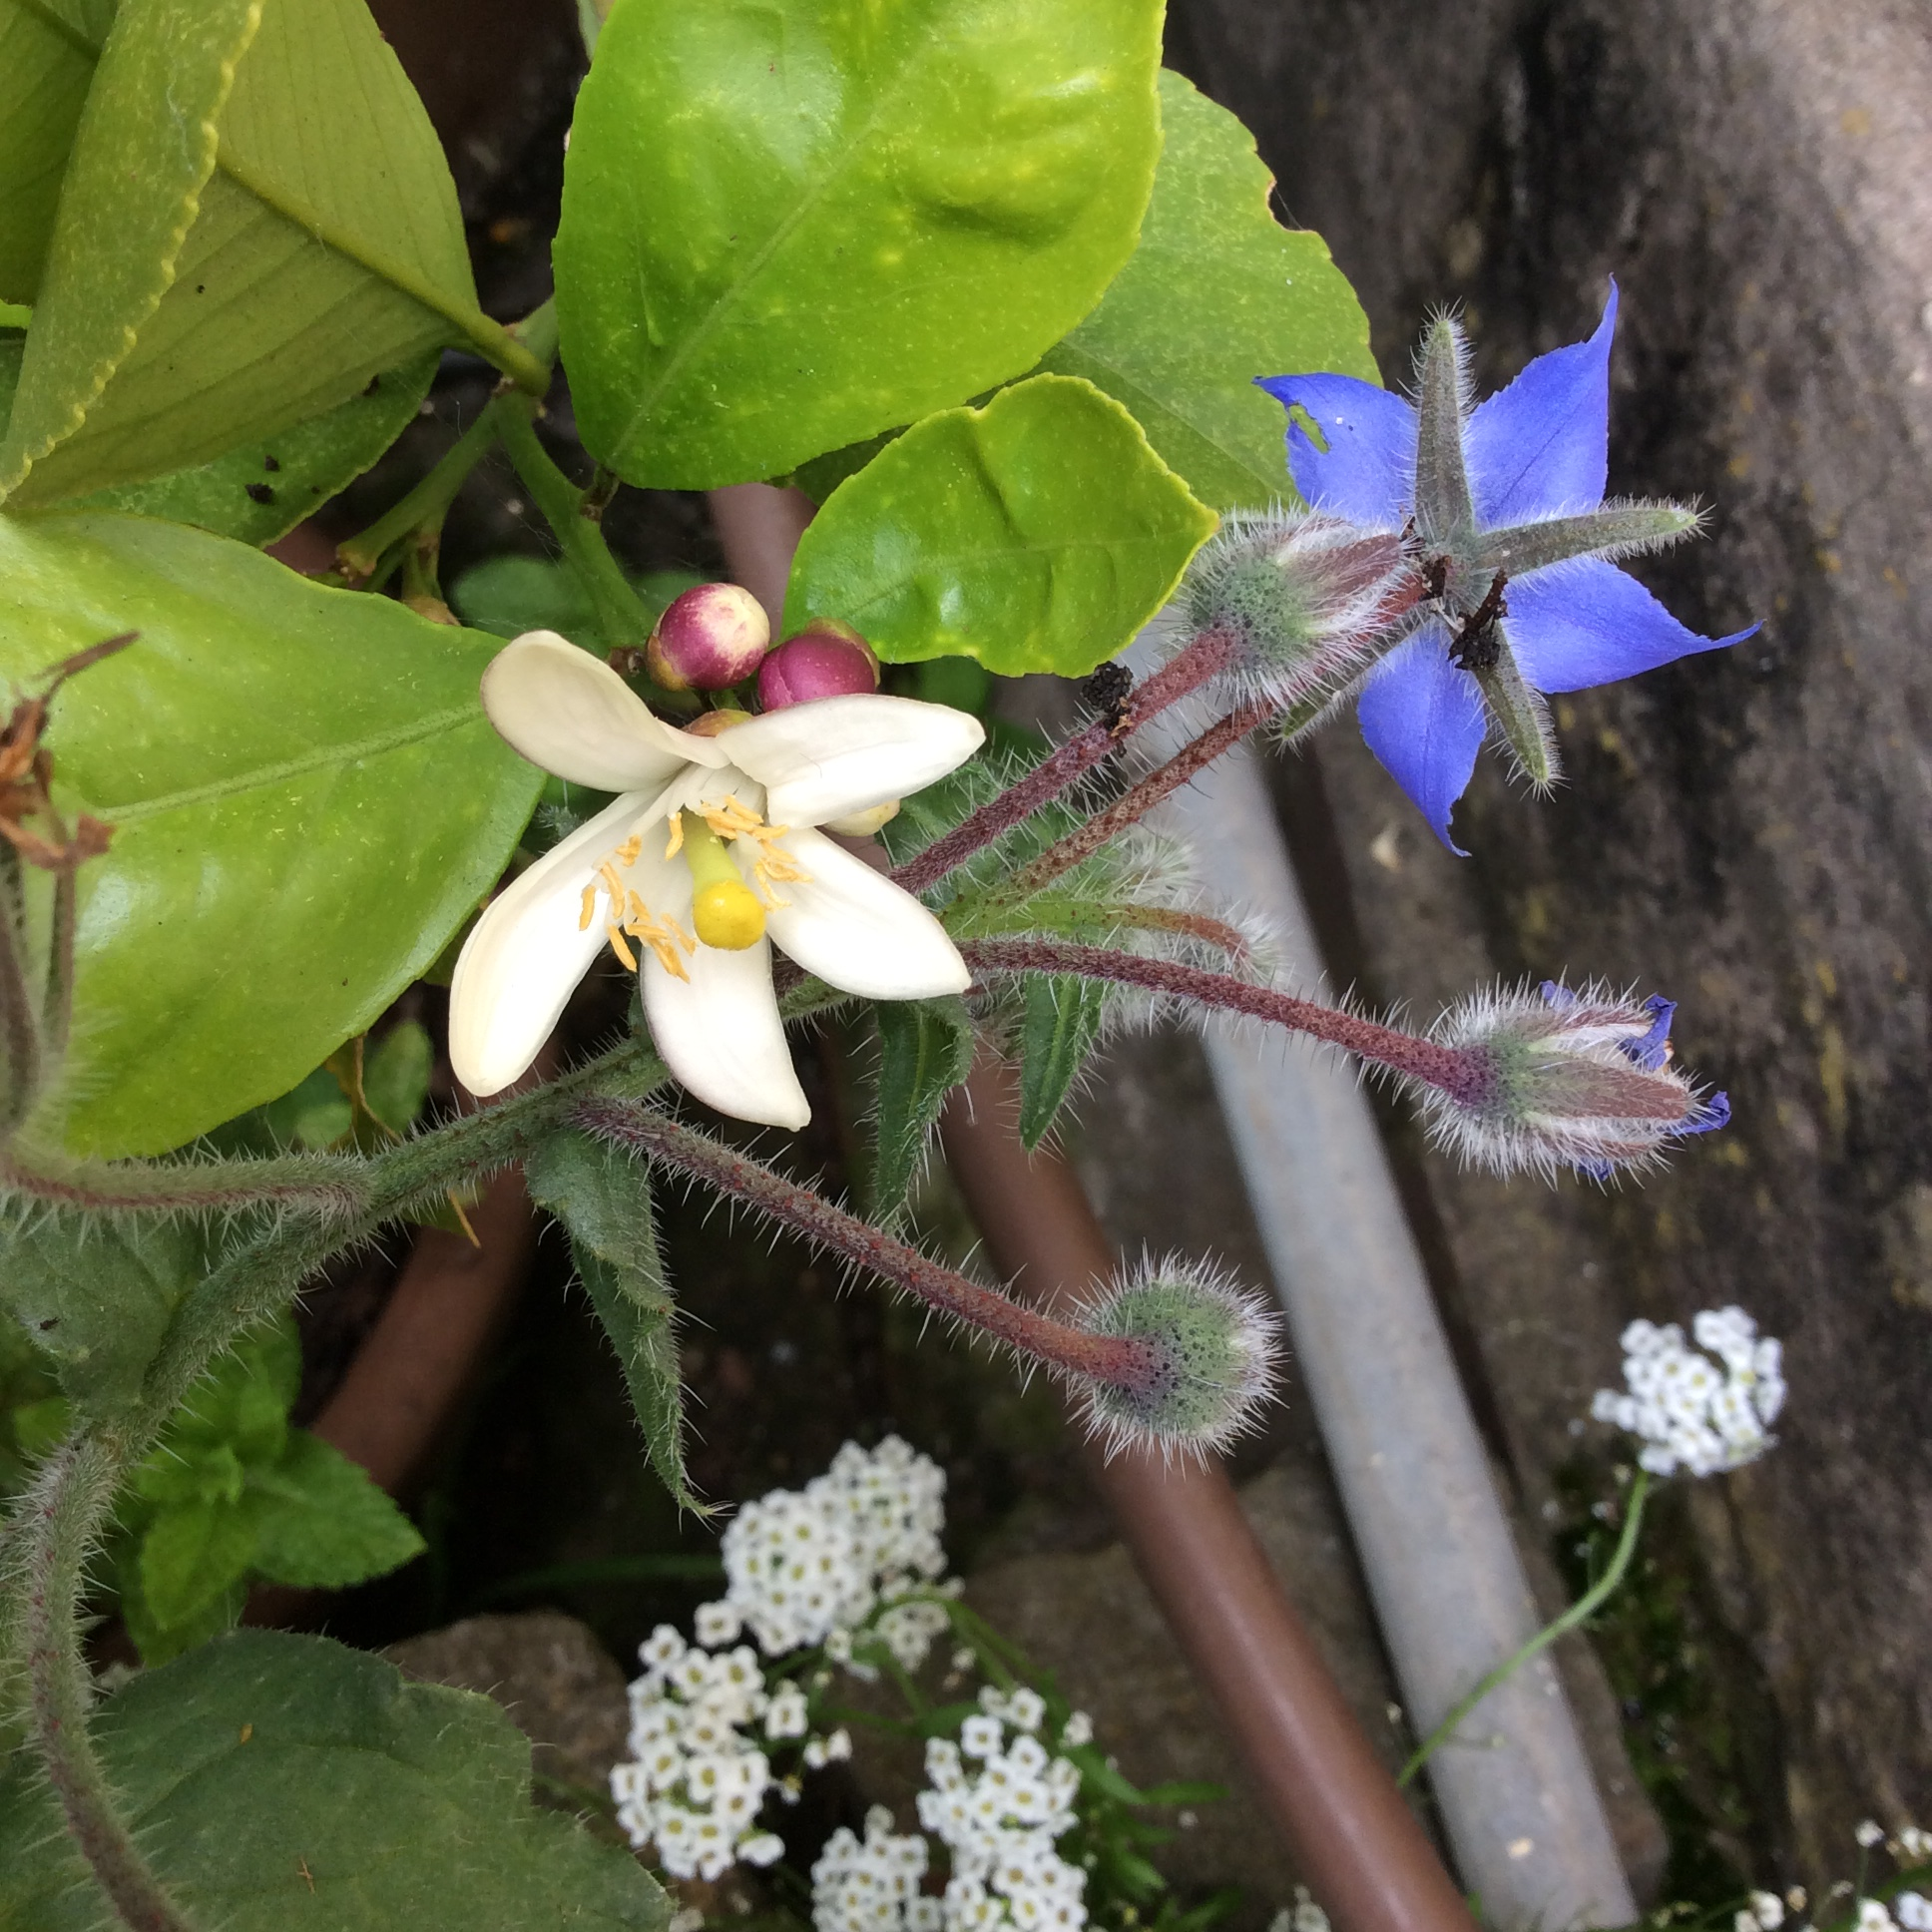 Pink lemon buds unfolding into white blooms and blue borage blooms